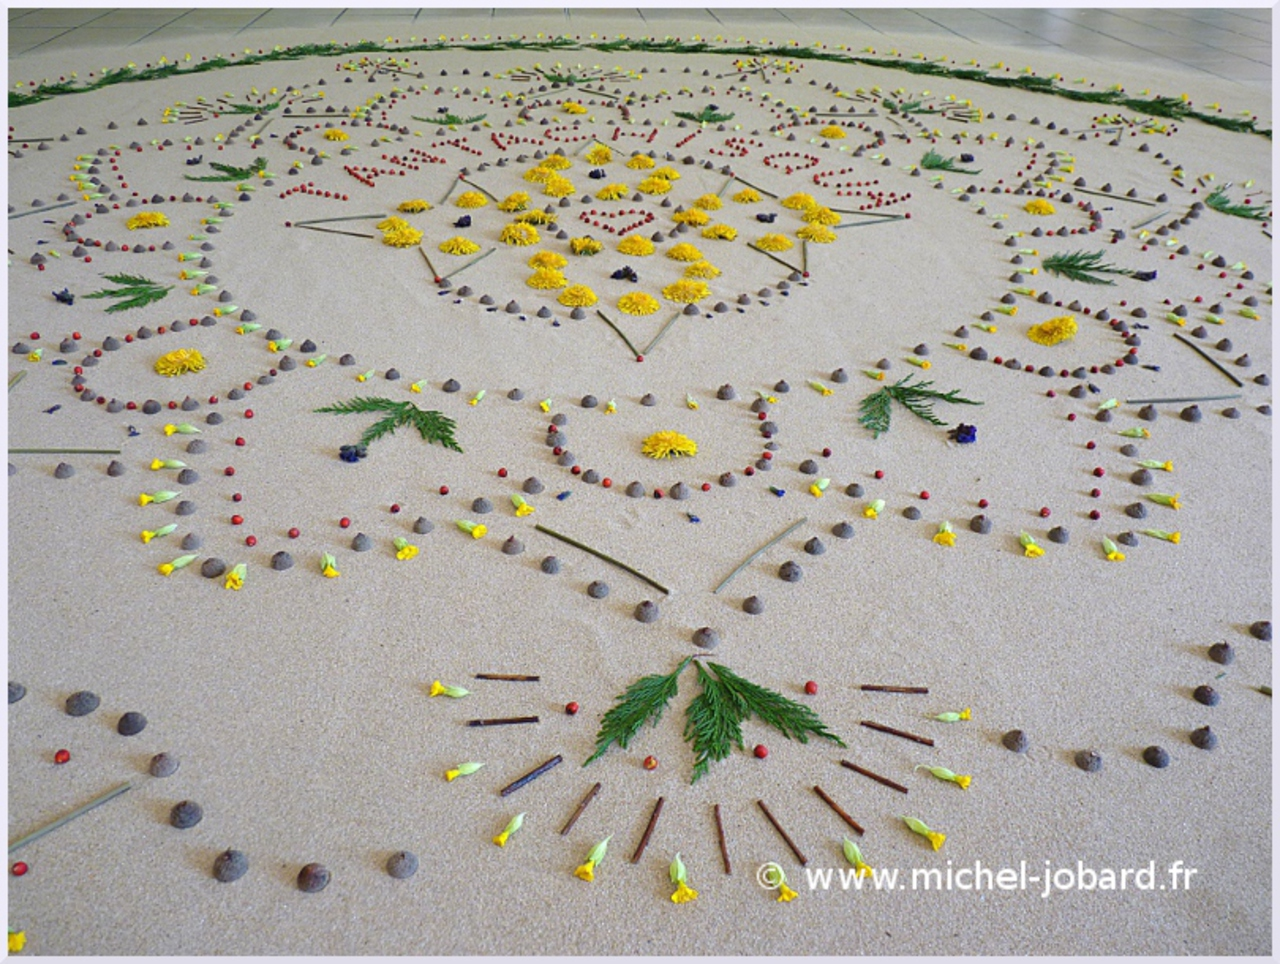 Fresque Land art Tantachisqua, Michel Jobard